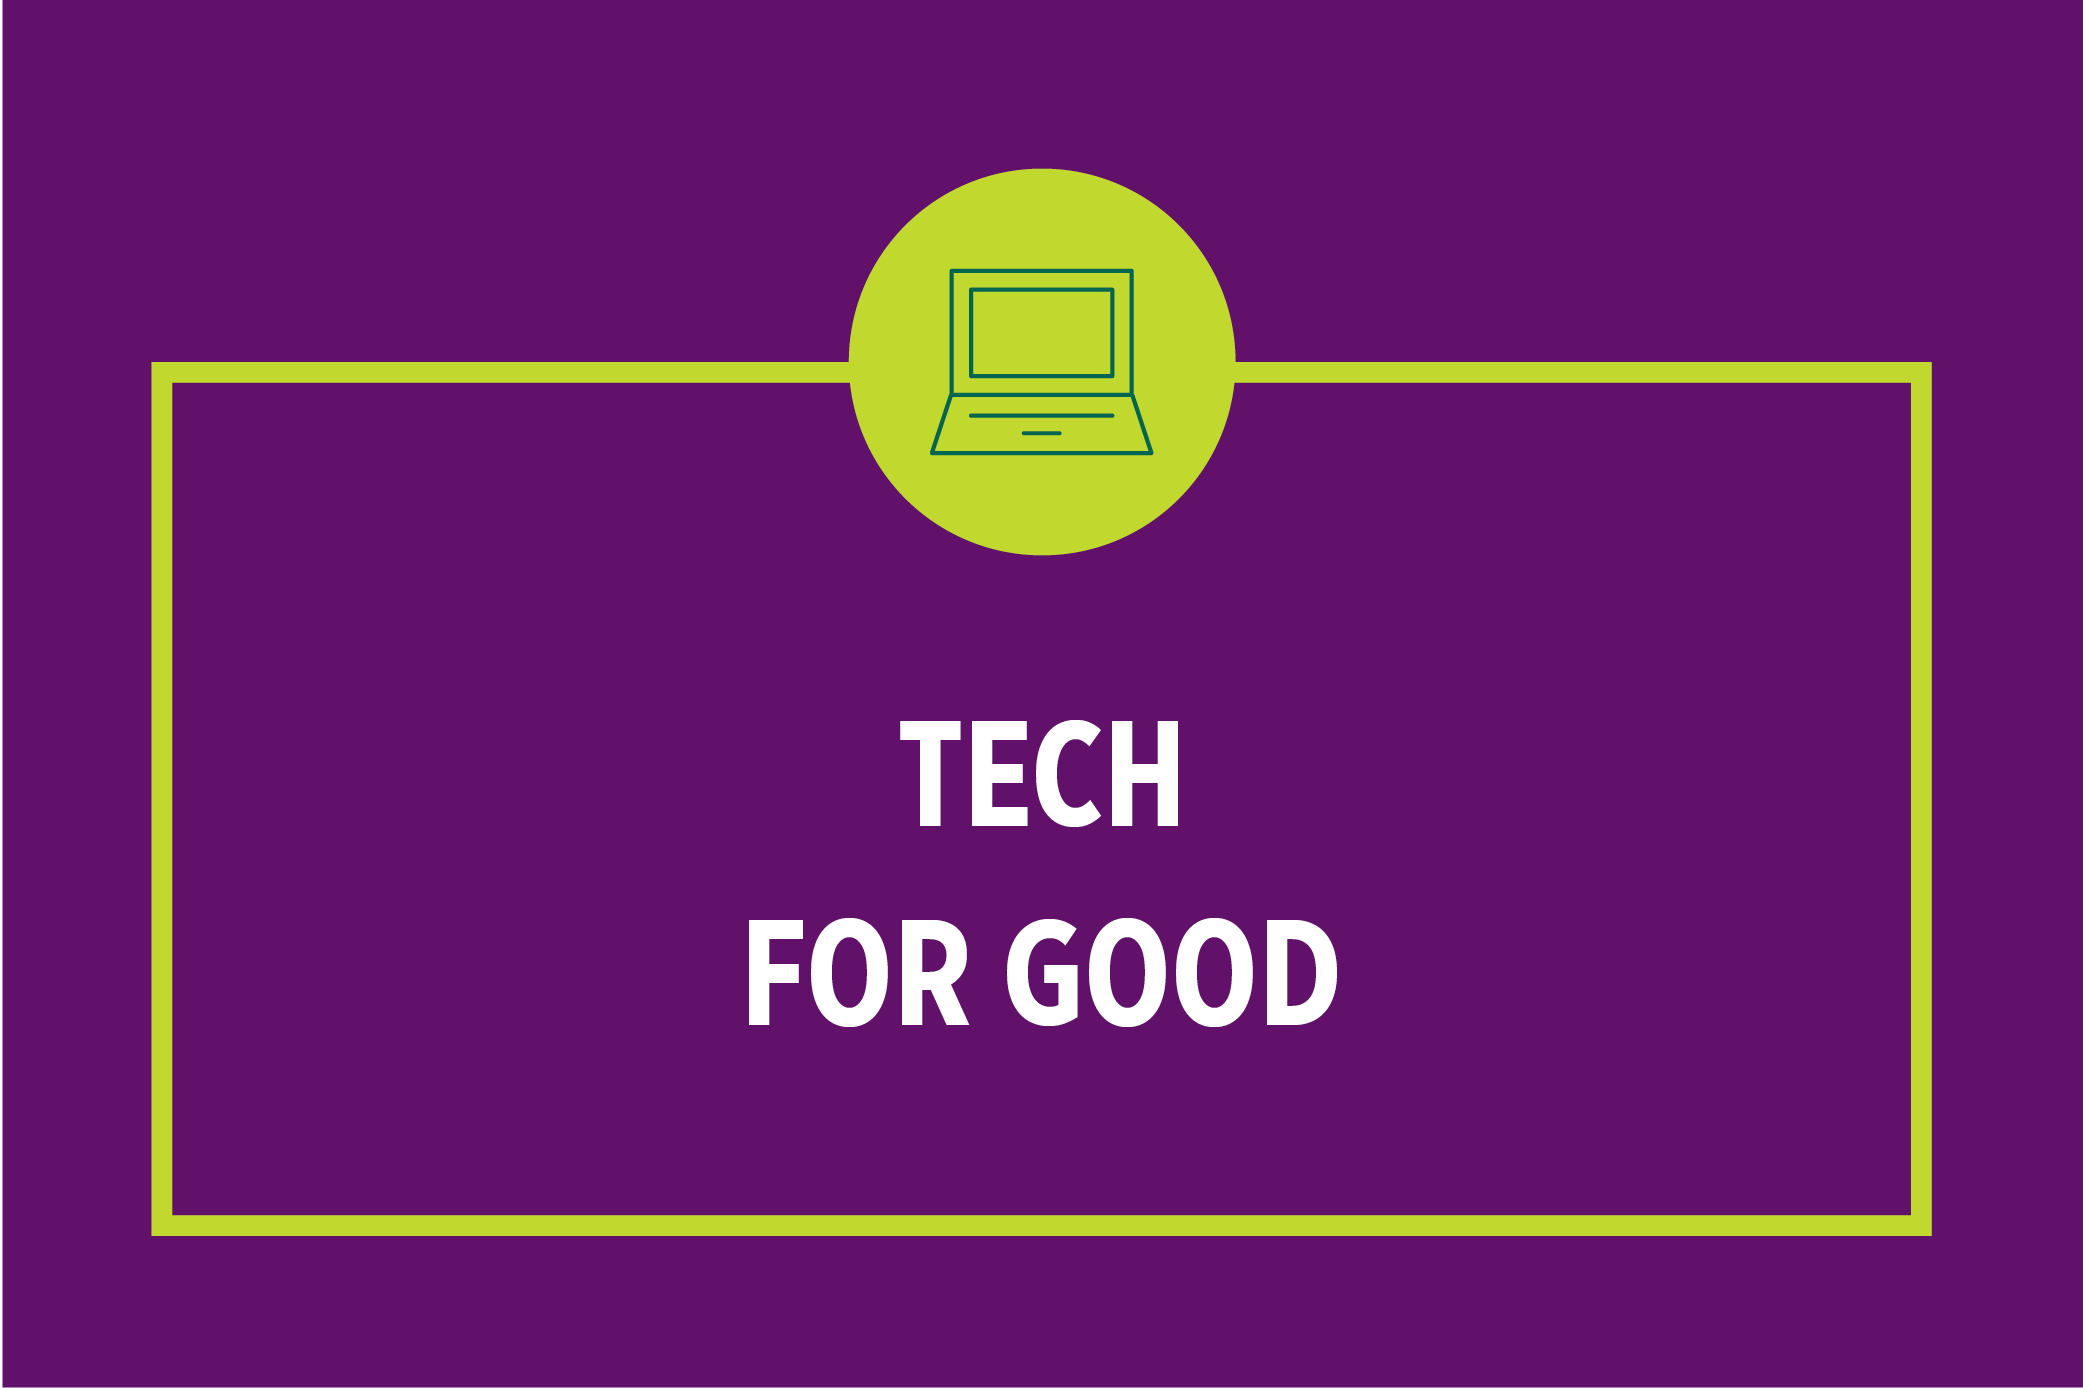 Tech for Good: Encouraging Responsible Use in the Digital Age